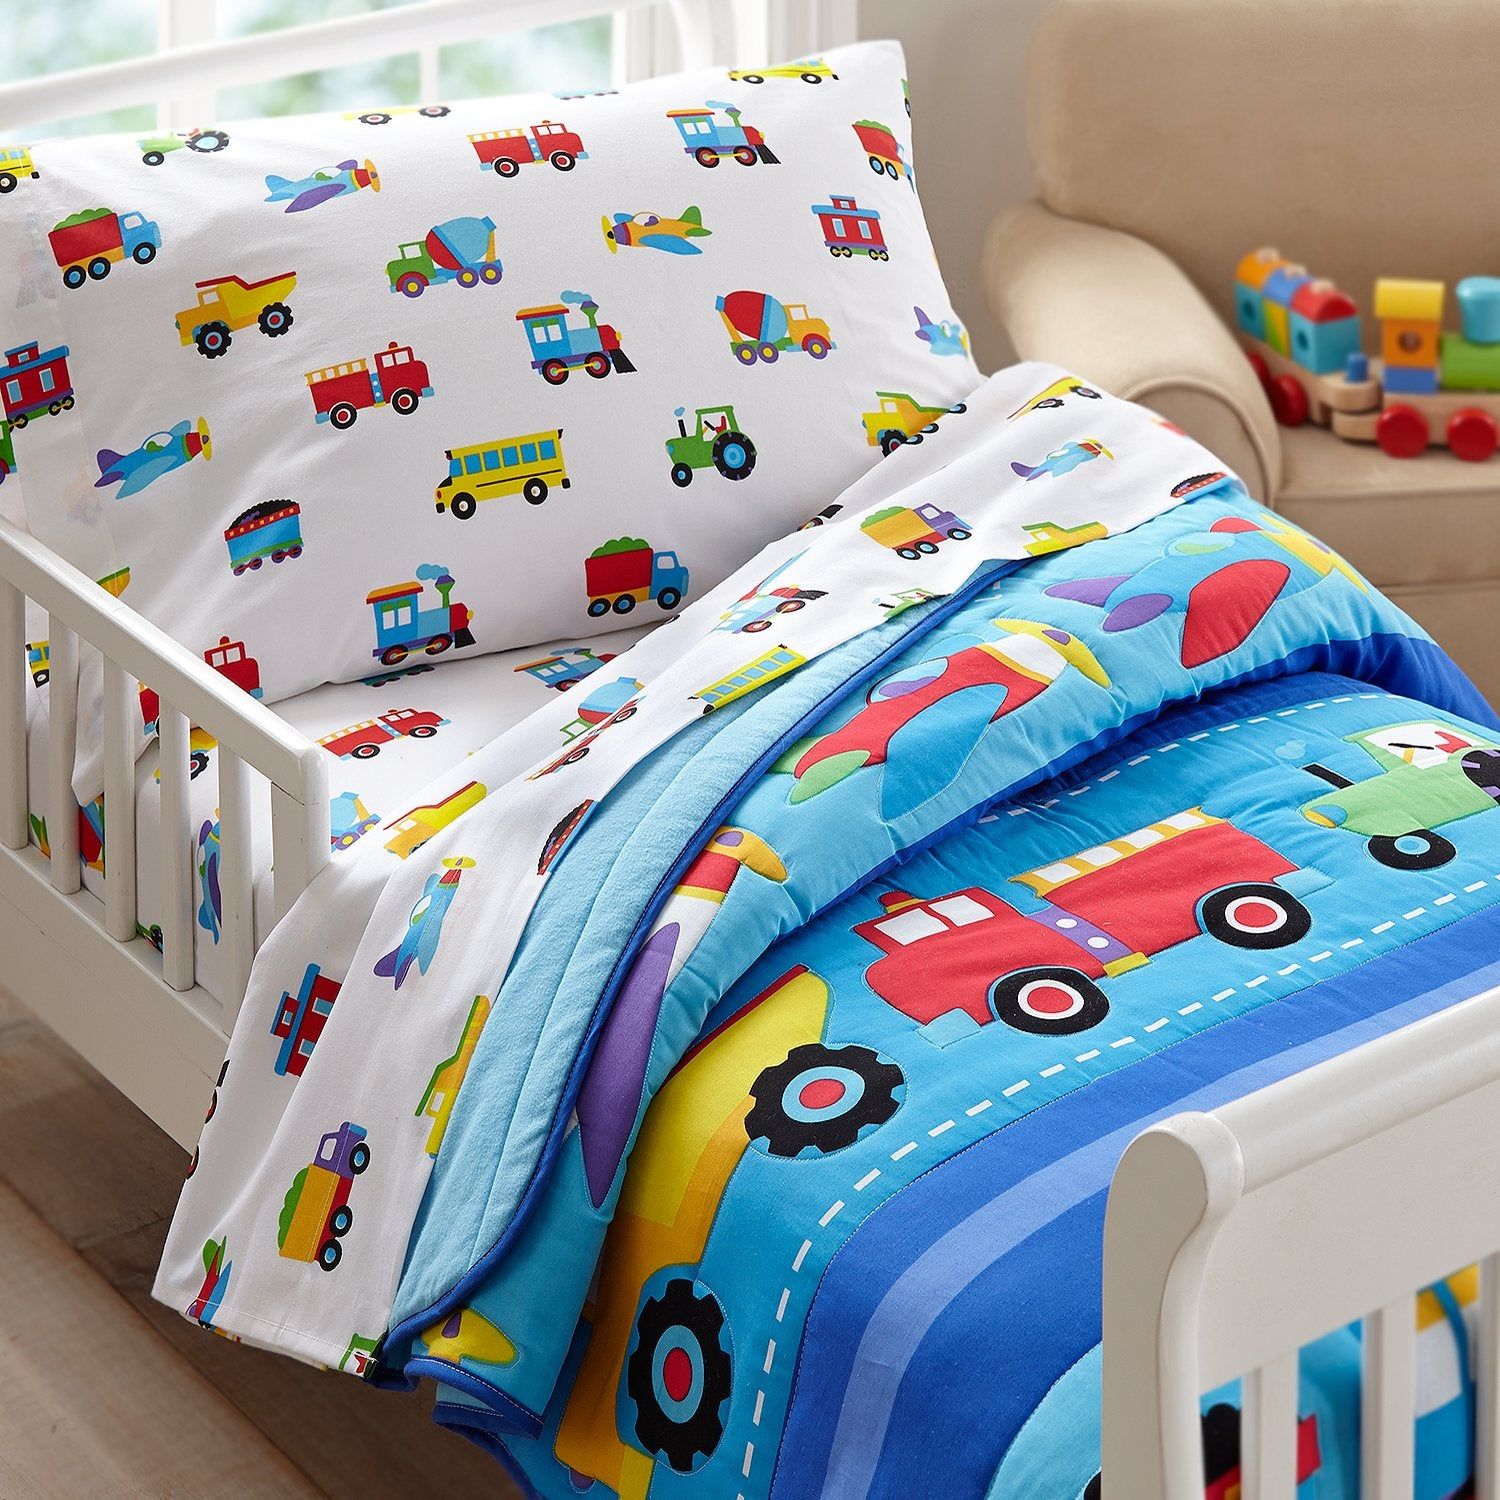 Trains, Planes and Trucks Toddler Set